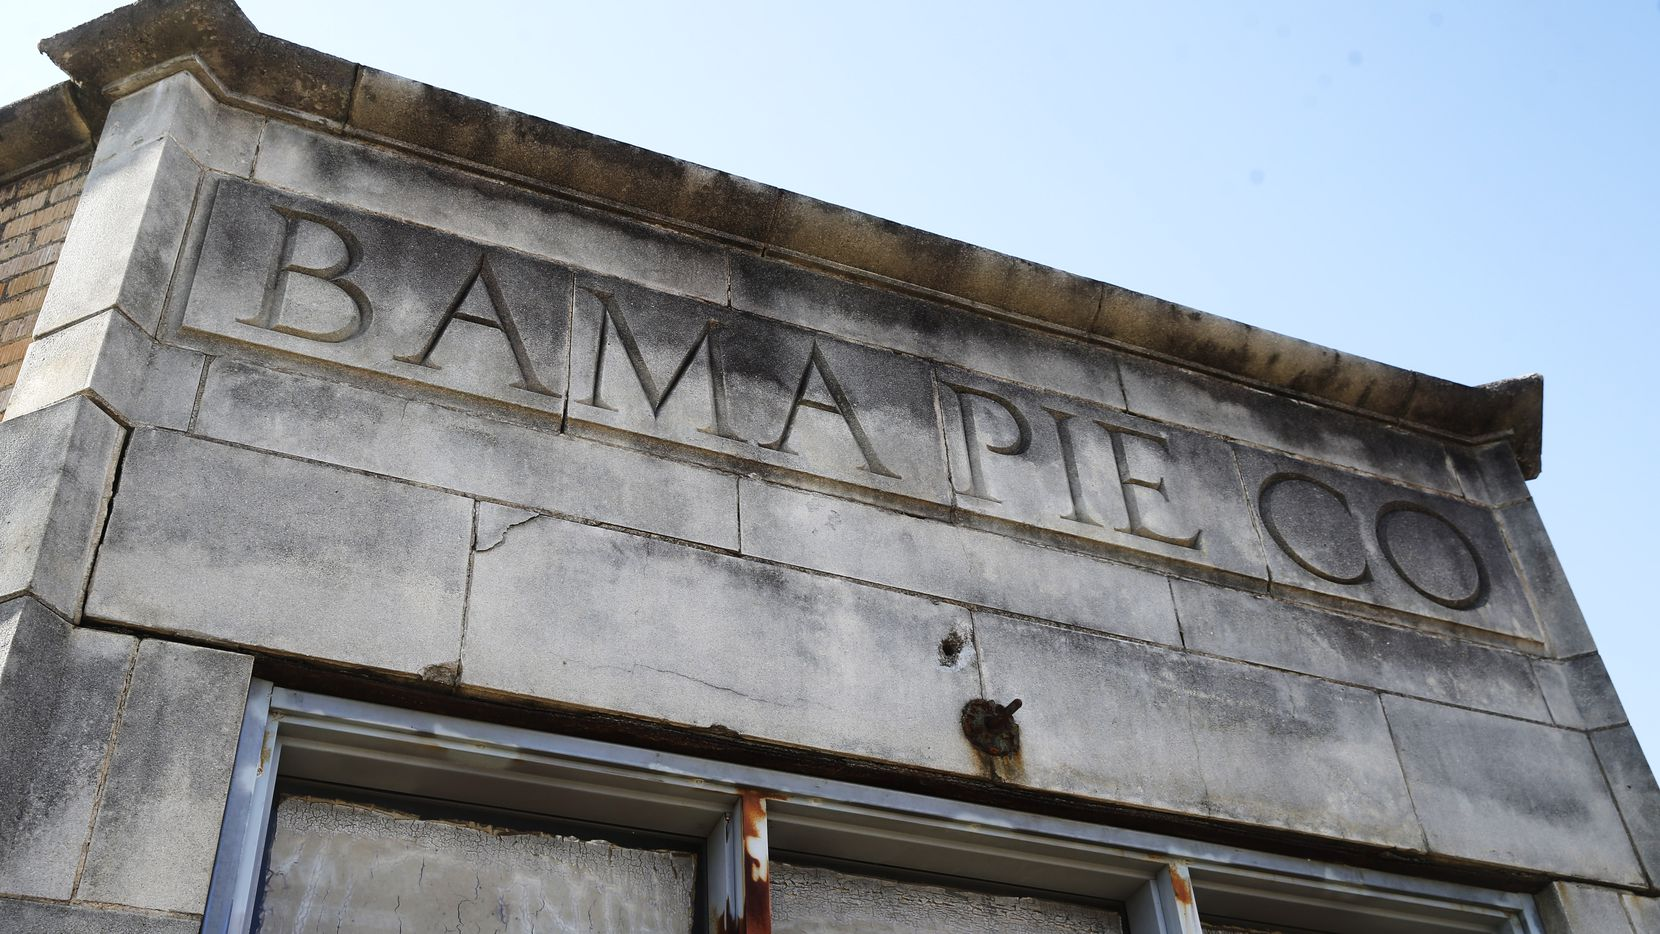 For 20 years the 1936 Bama Pie Co. building in South Dallas has been waiting for the Motorsports Museum that never materialized.